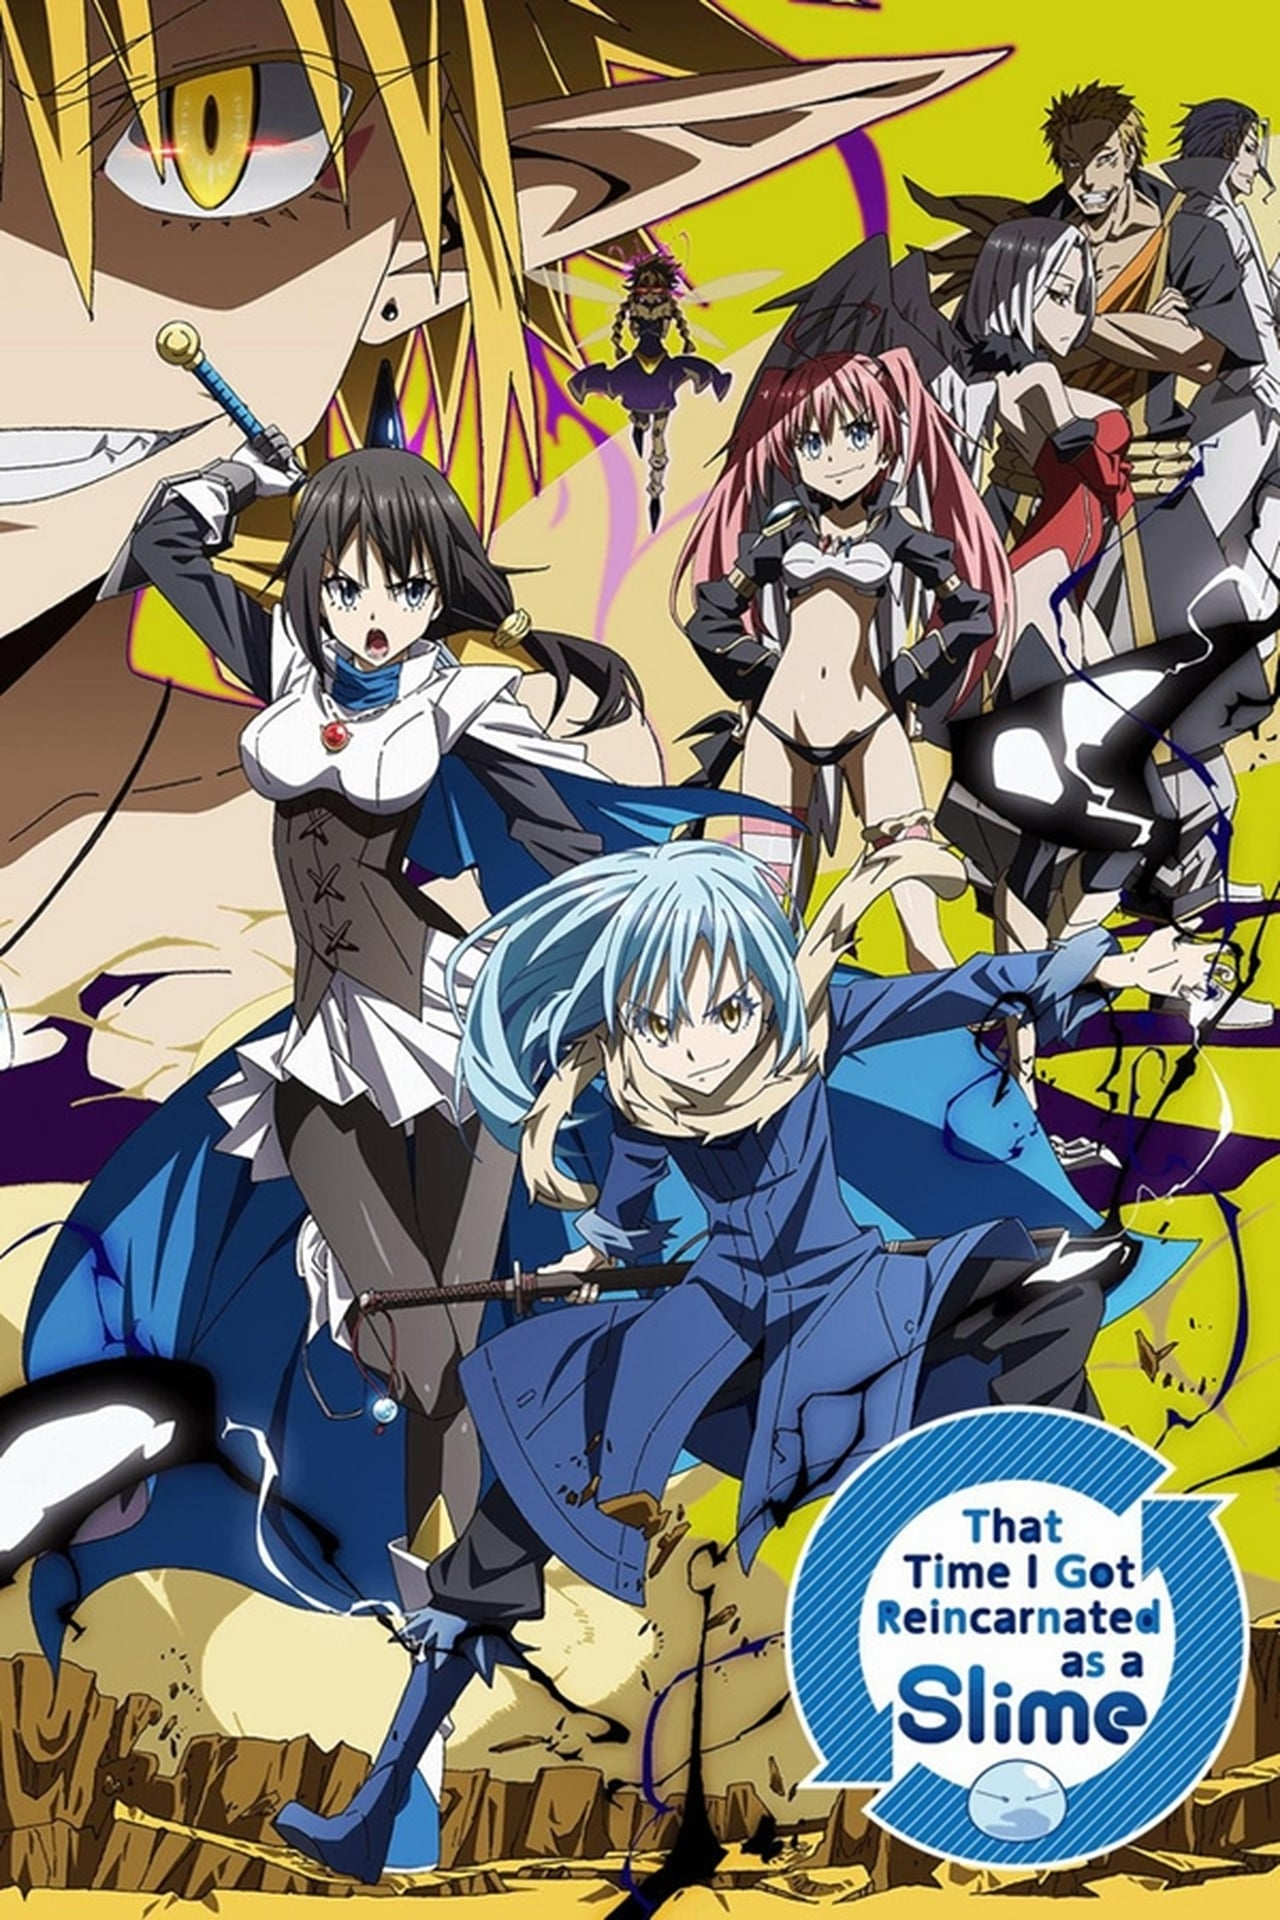 That Time I Got Reincarnated As A Slime Vostfr : reincarnated, slime, vostfr, Index, /wp-content/uploads/2020/10